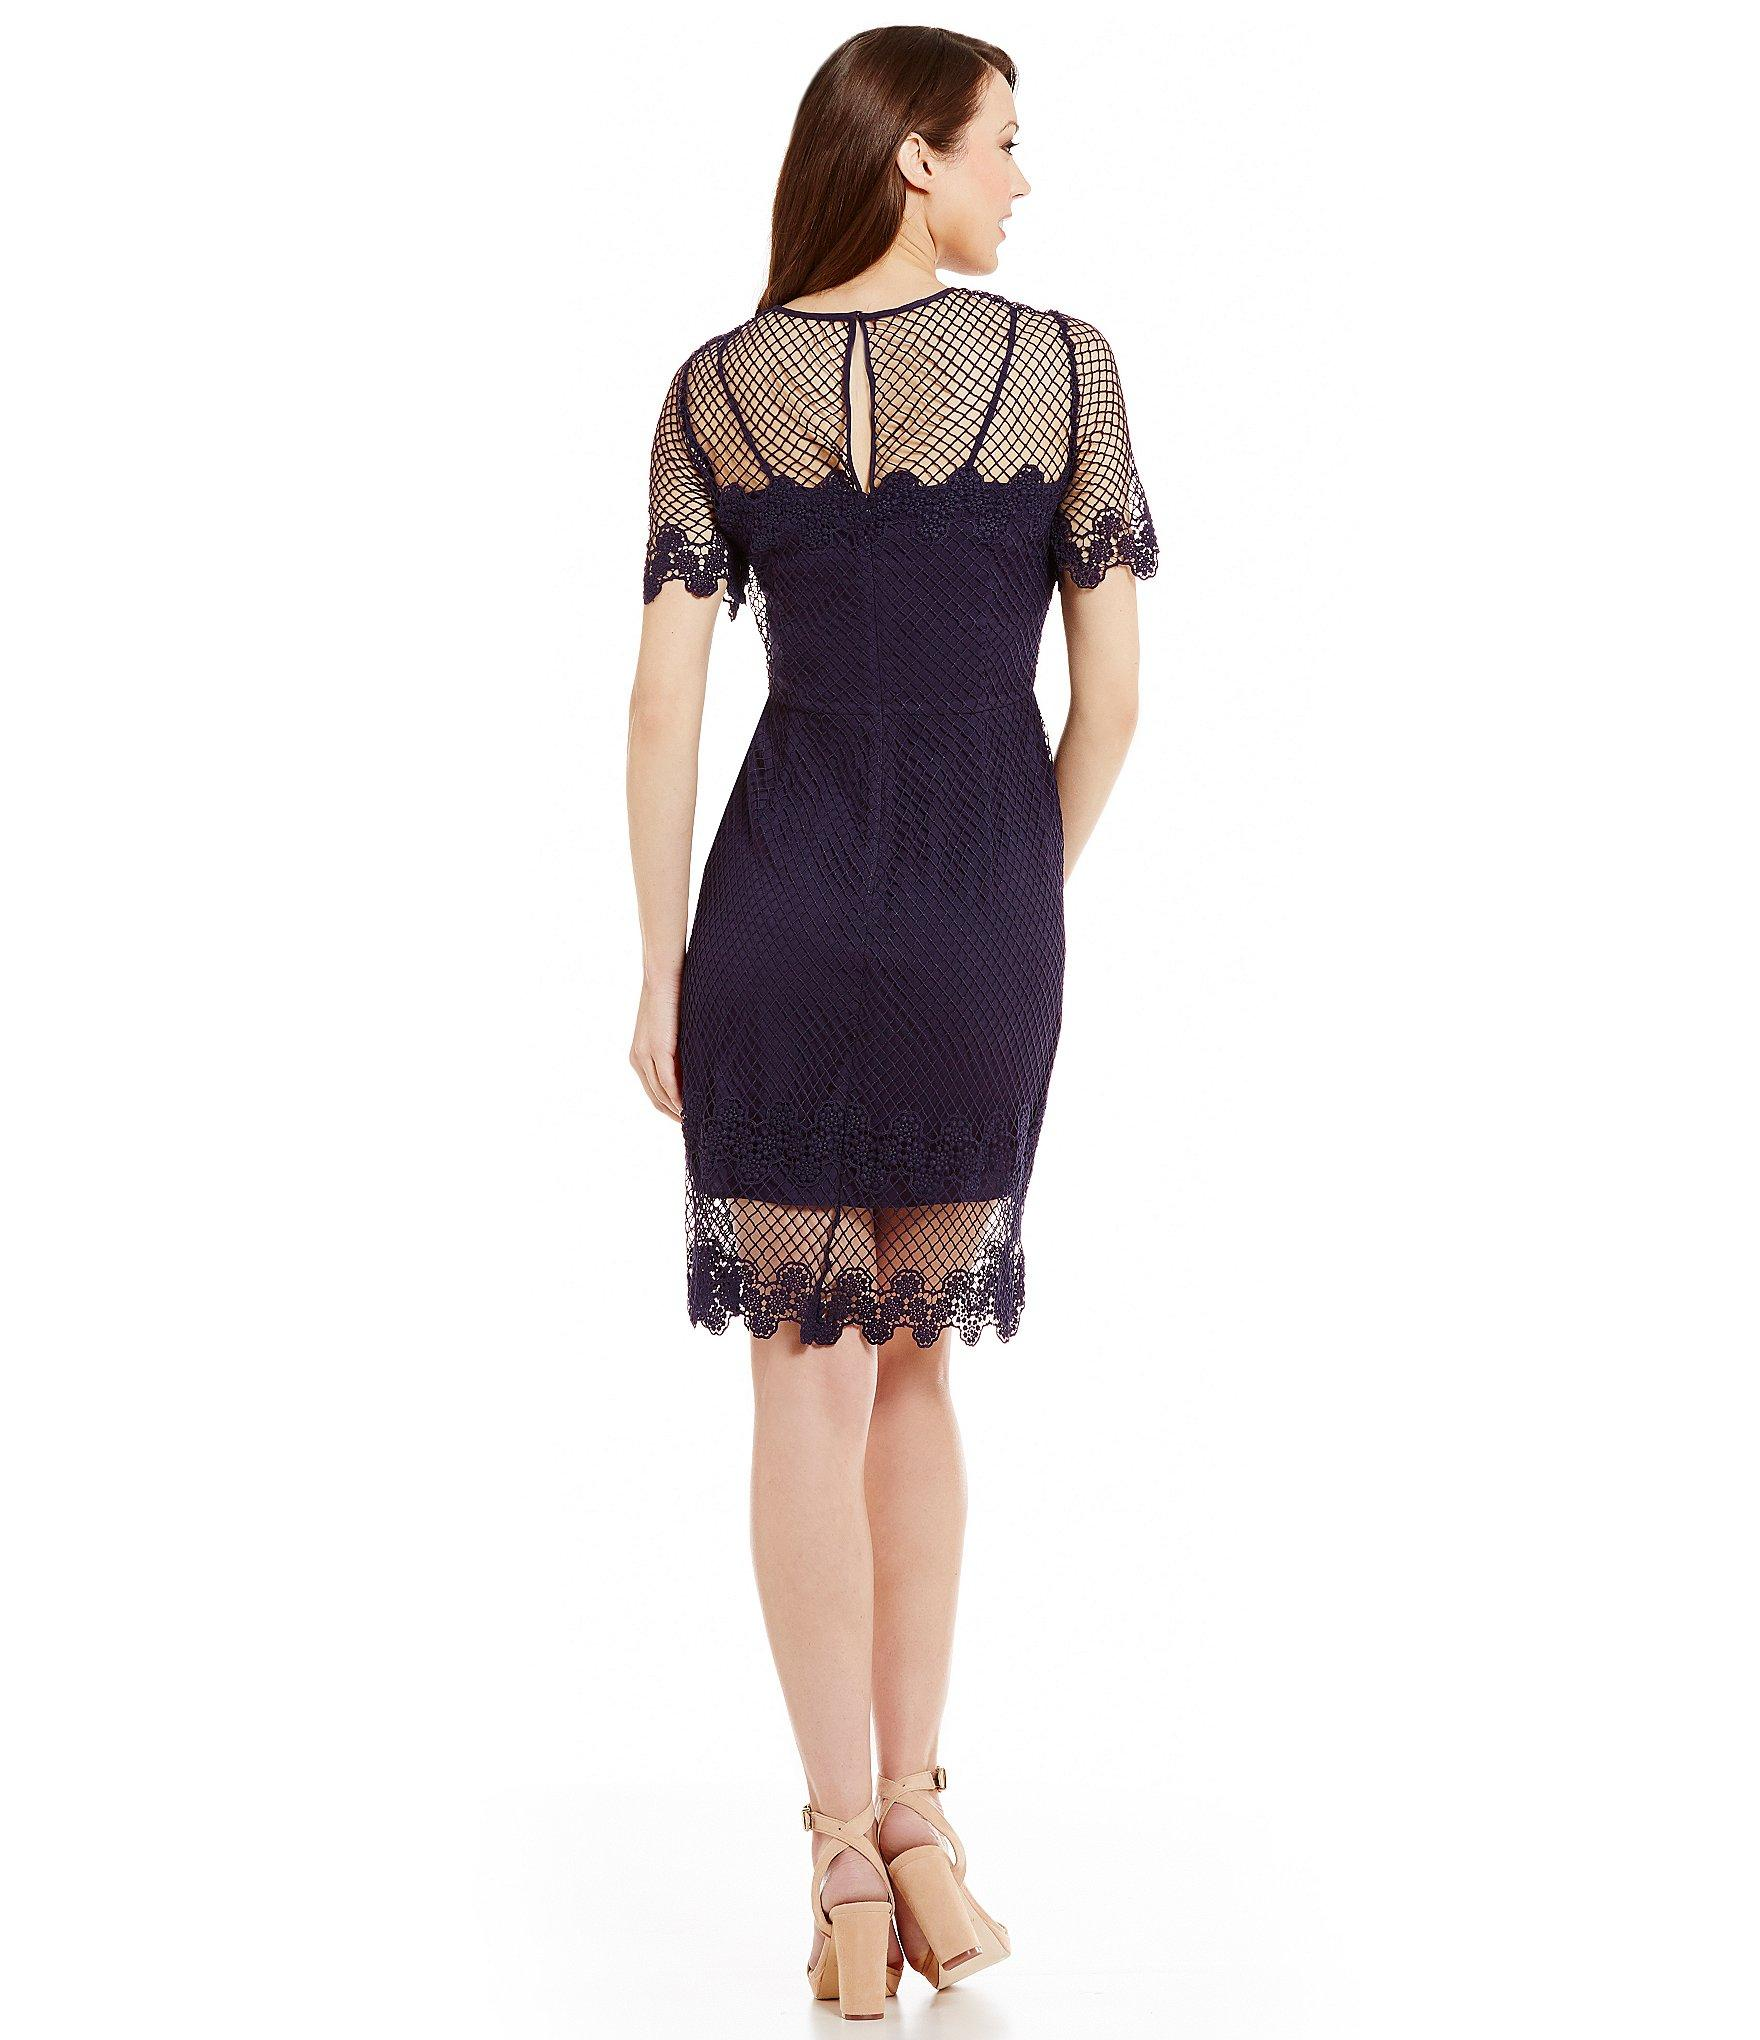 a272a2c88ad Lyst - Antonio Melani Milly Crew Neck Short Sleeve Mesh Lace Dress ...